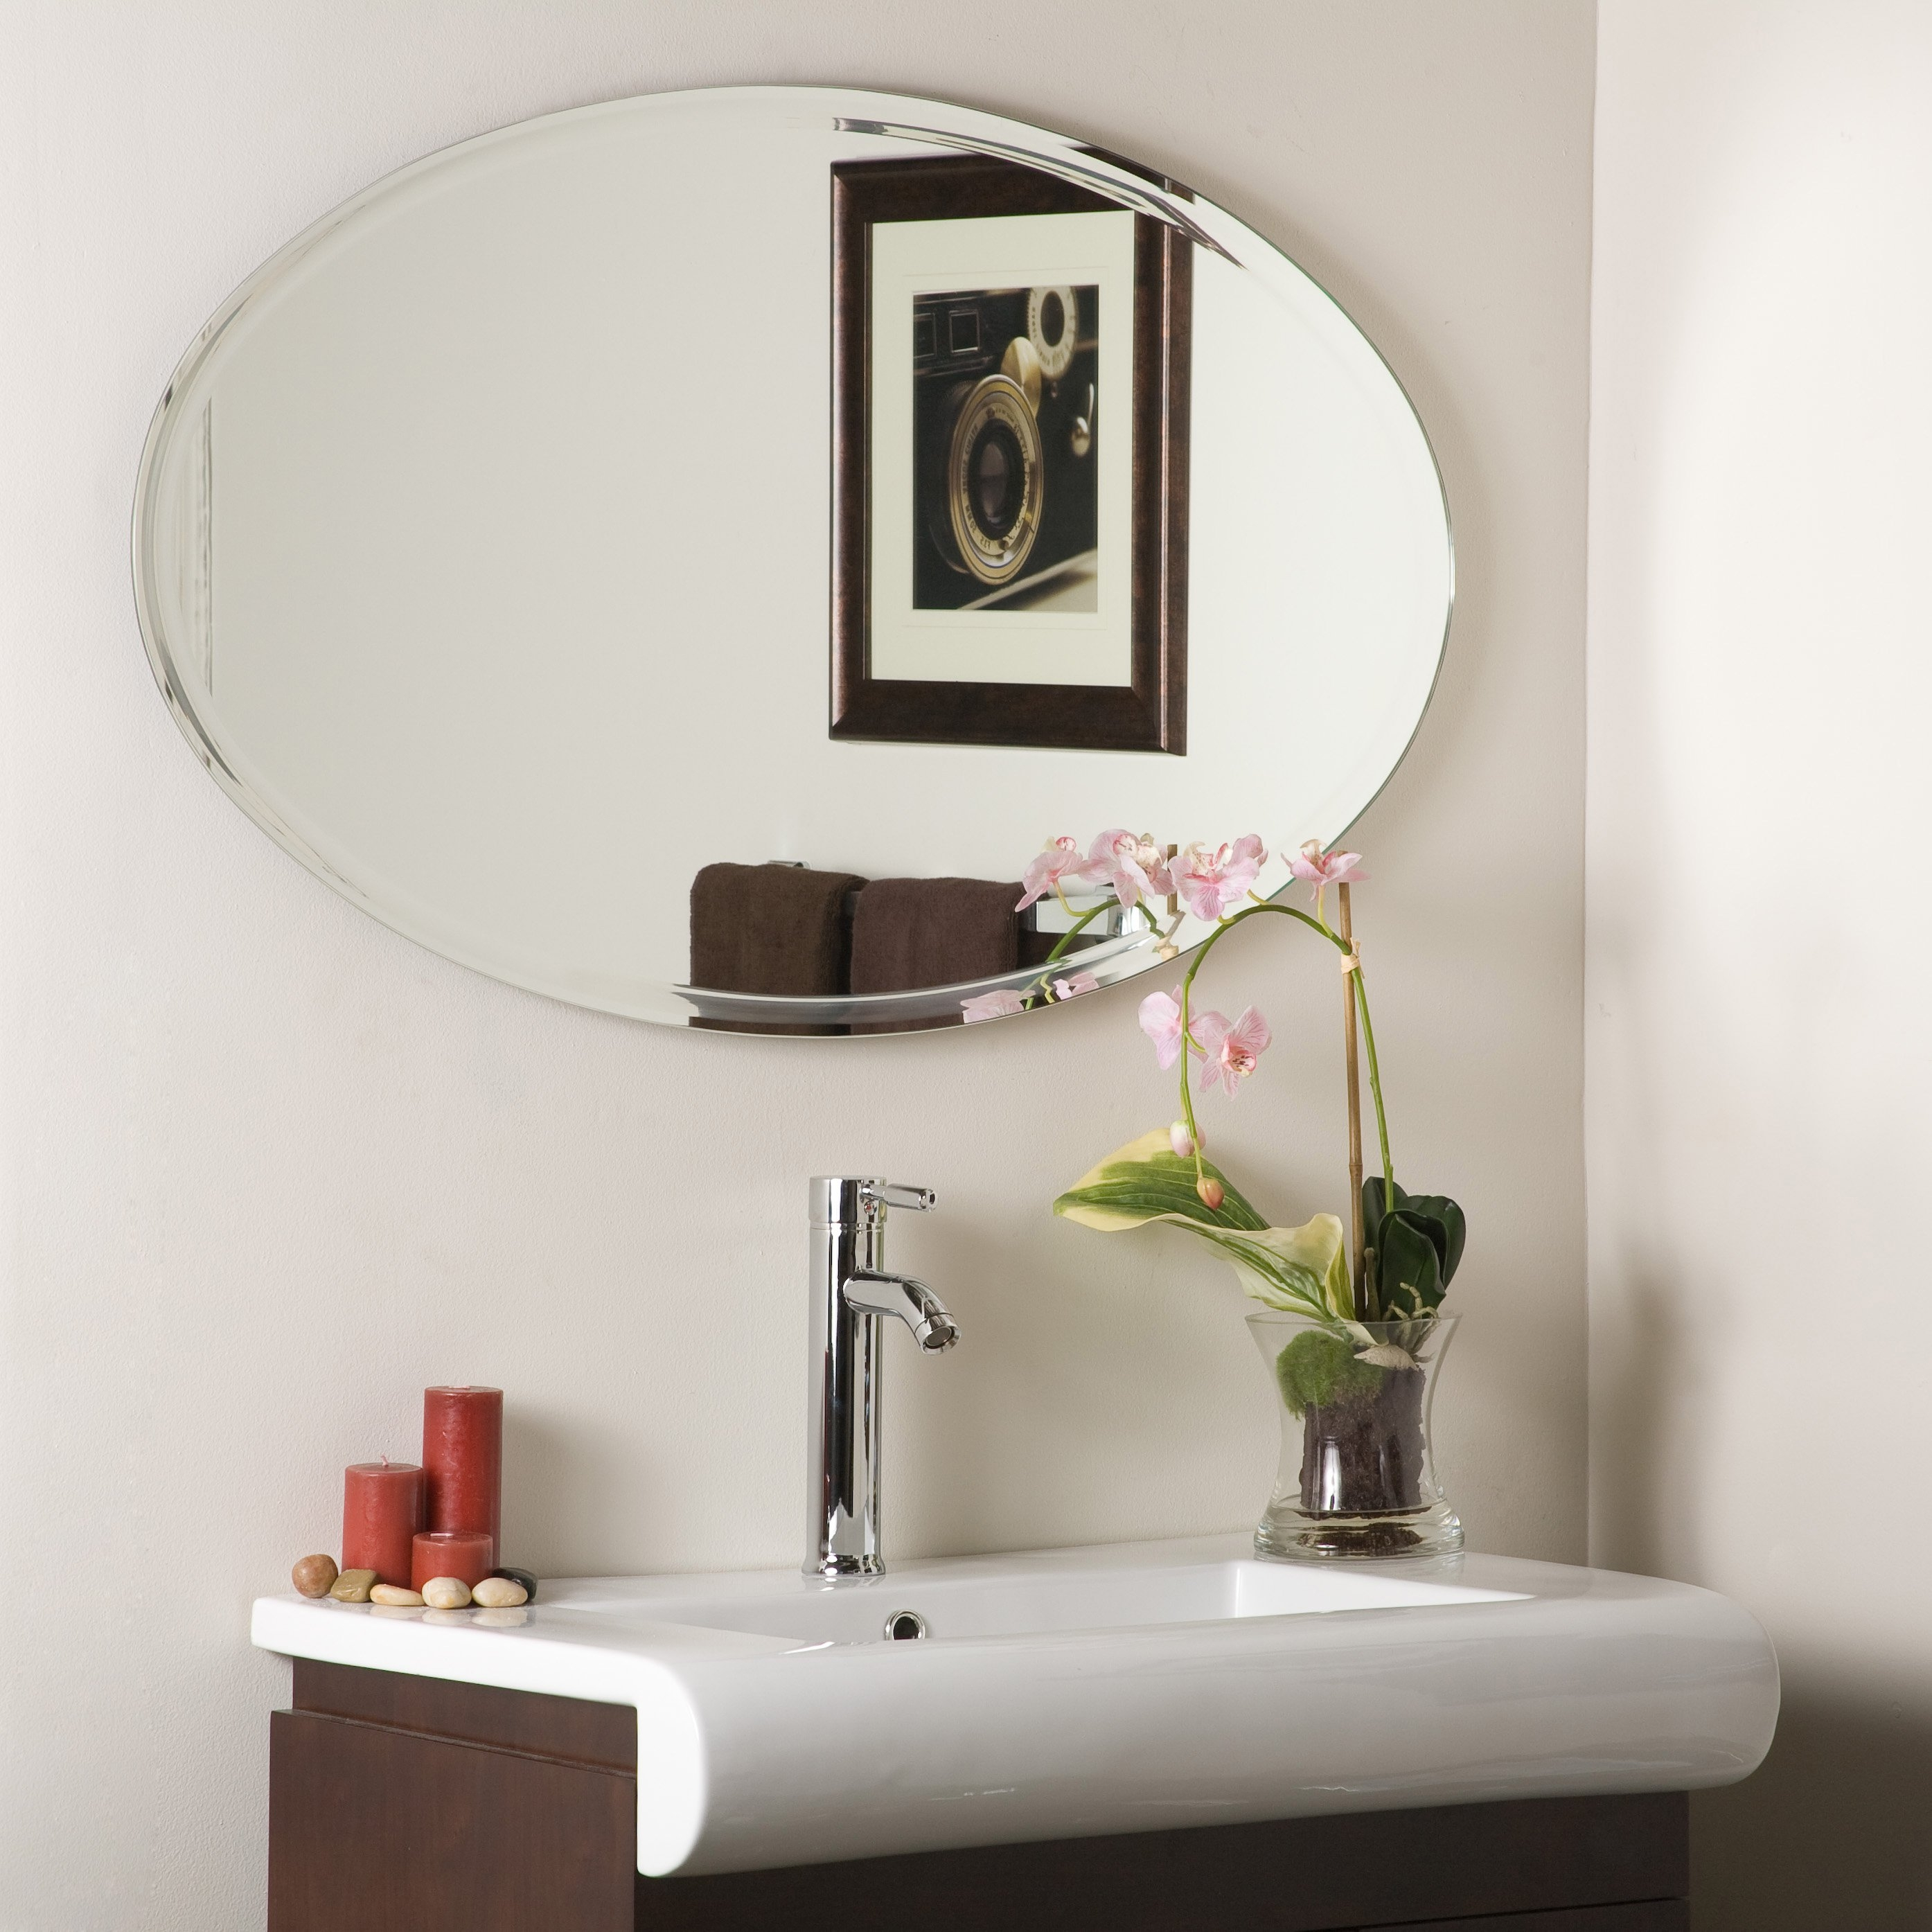 Bathroom Bronze Framed Mirror Oval Mirrors For Bathroom Oval Inside Large Oval Wall Mirror (Image 3 of 14)